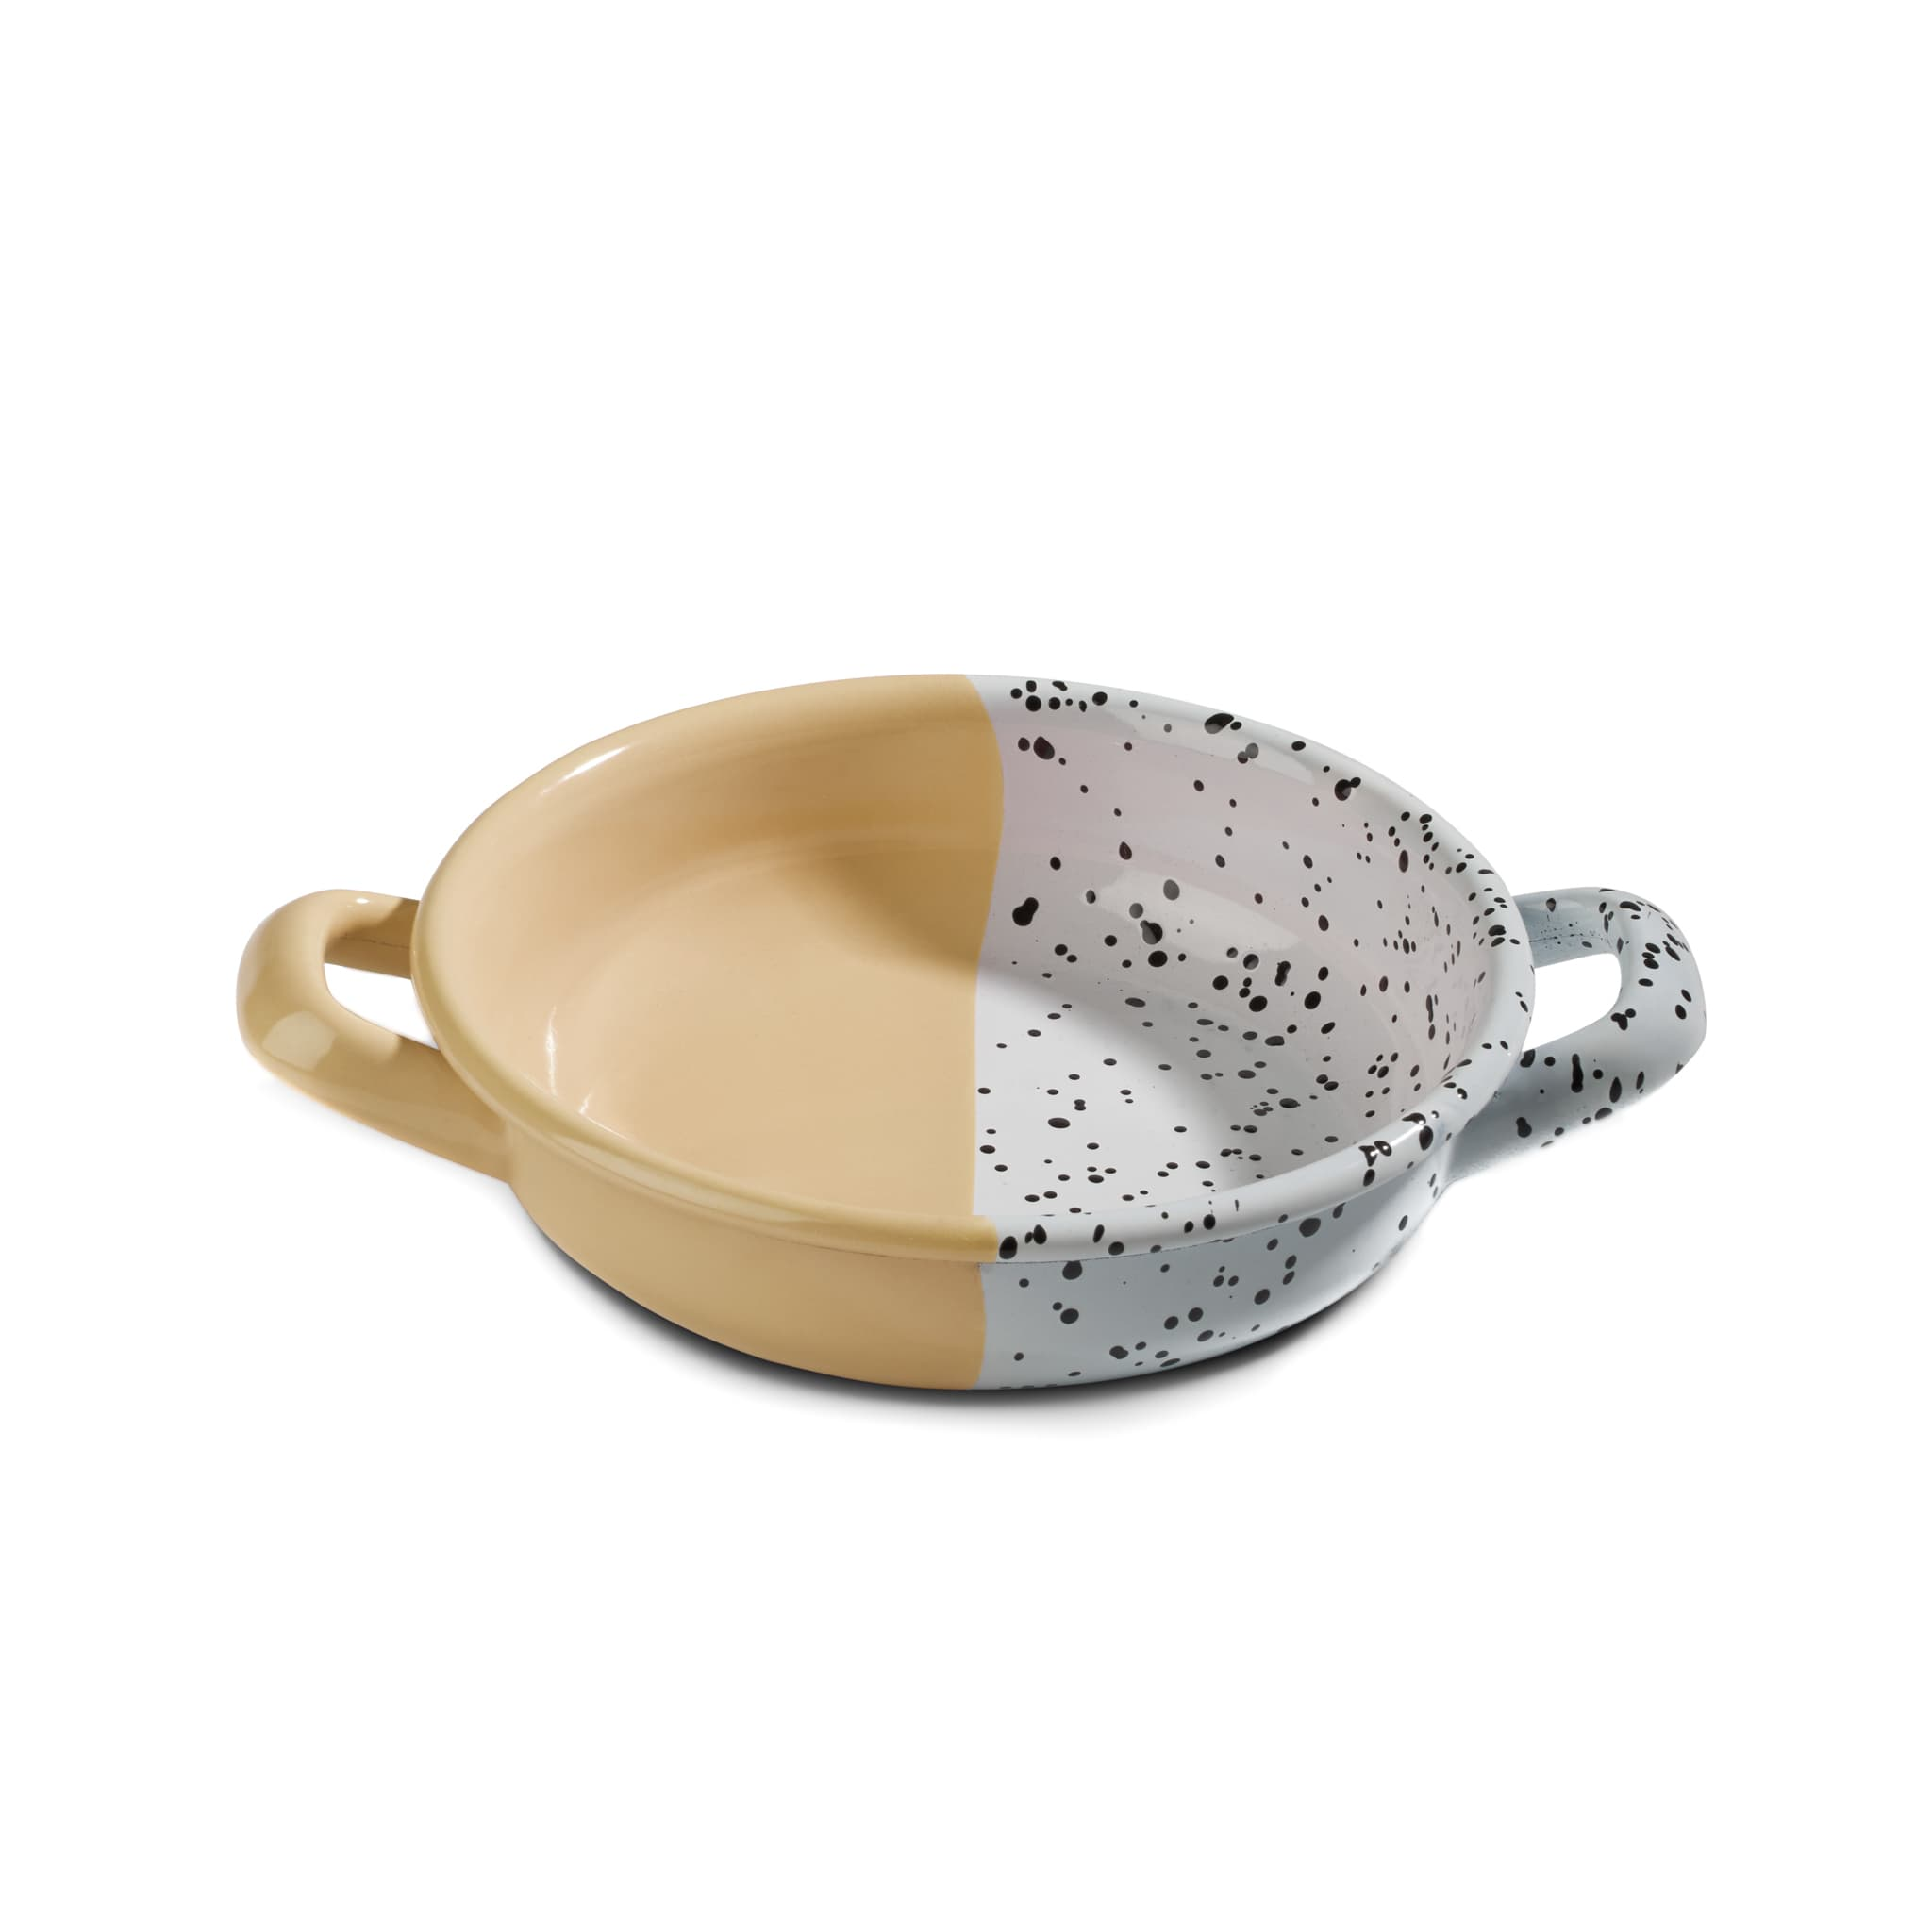 Kapka Colour Pop Enamel Frying Pan and Serving Dish Yellow 16cm Turkish Oven to Tableware